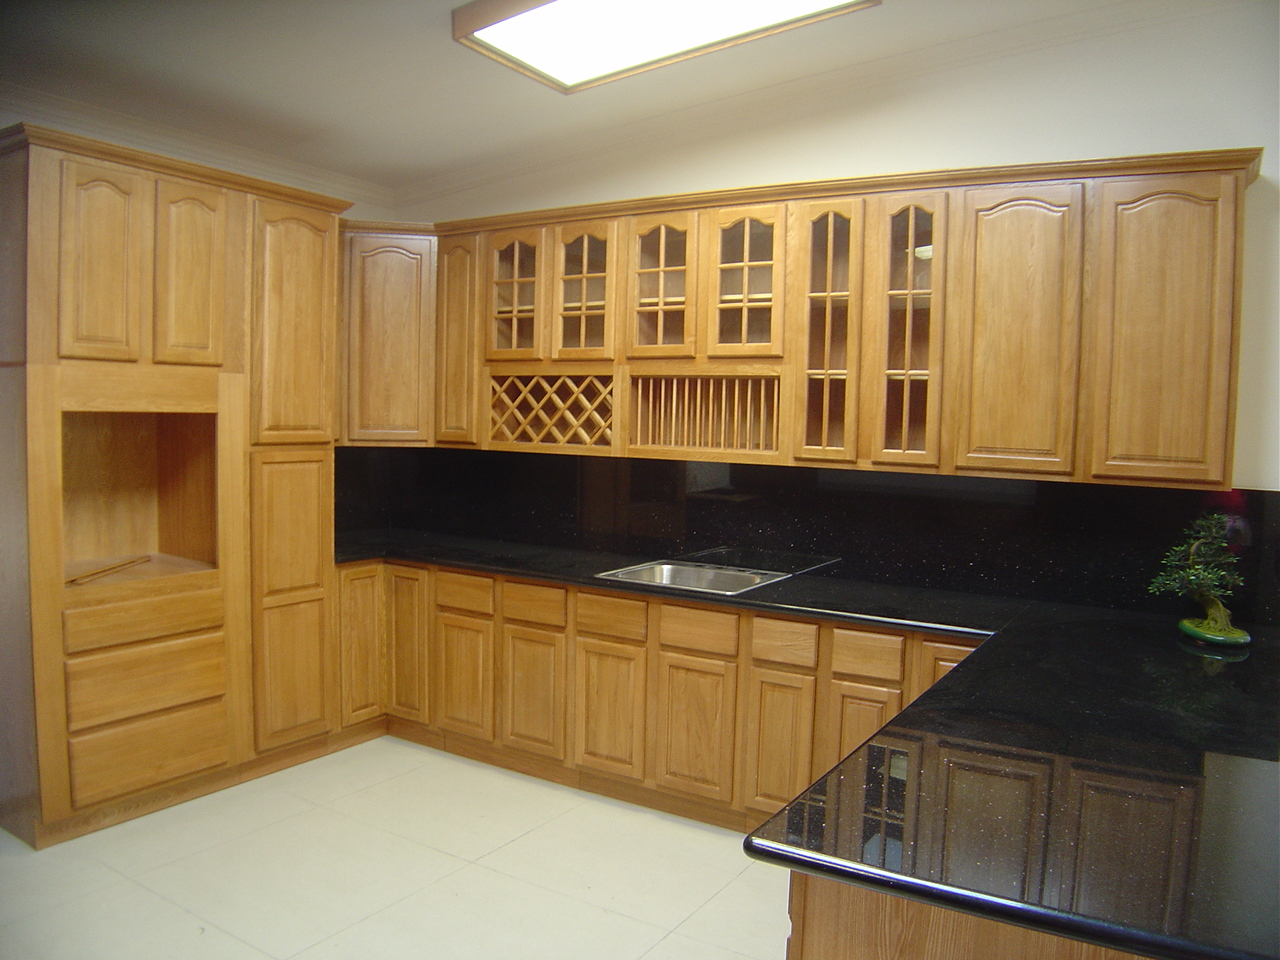 kitchen cabinets layout ideas photo - 1